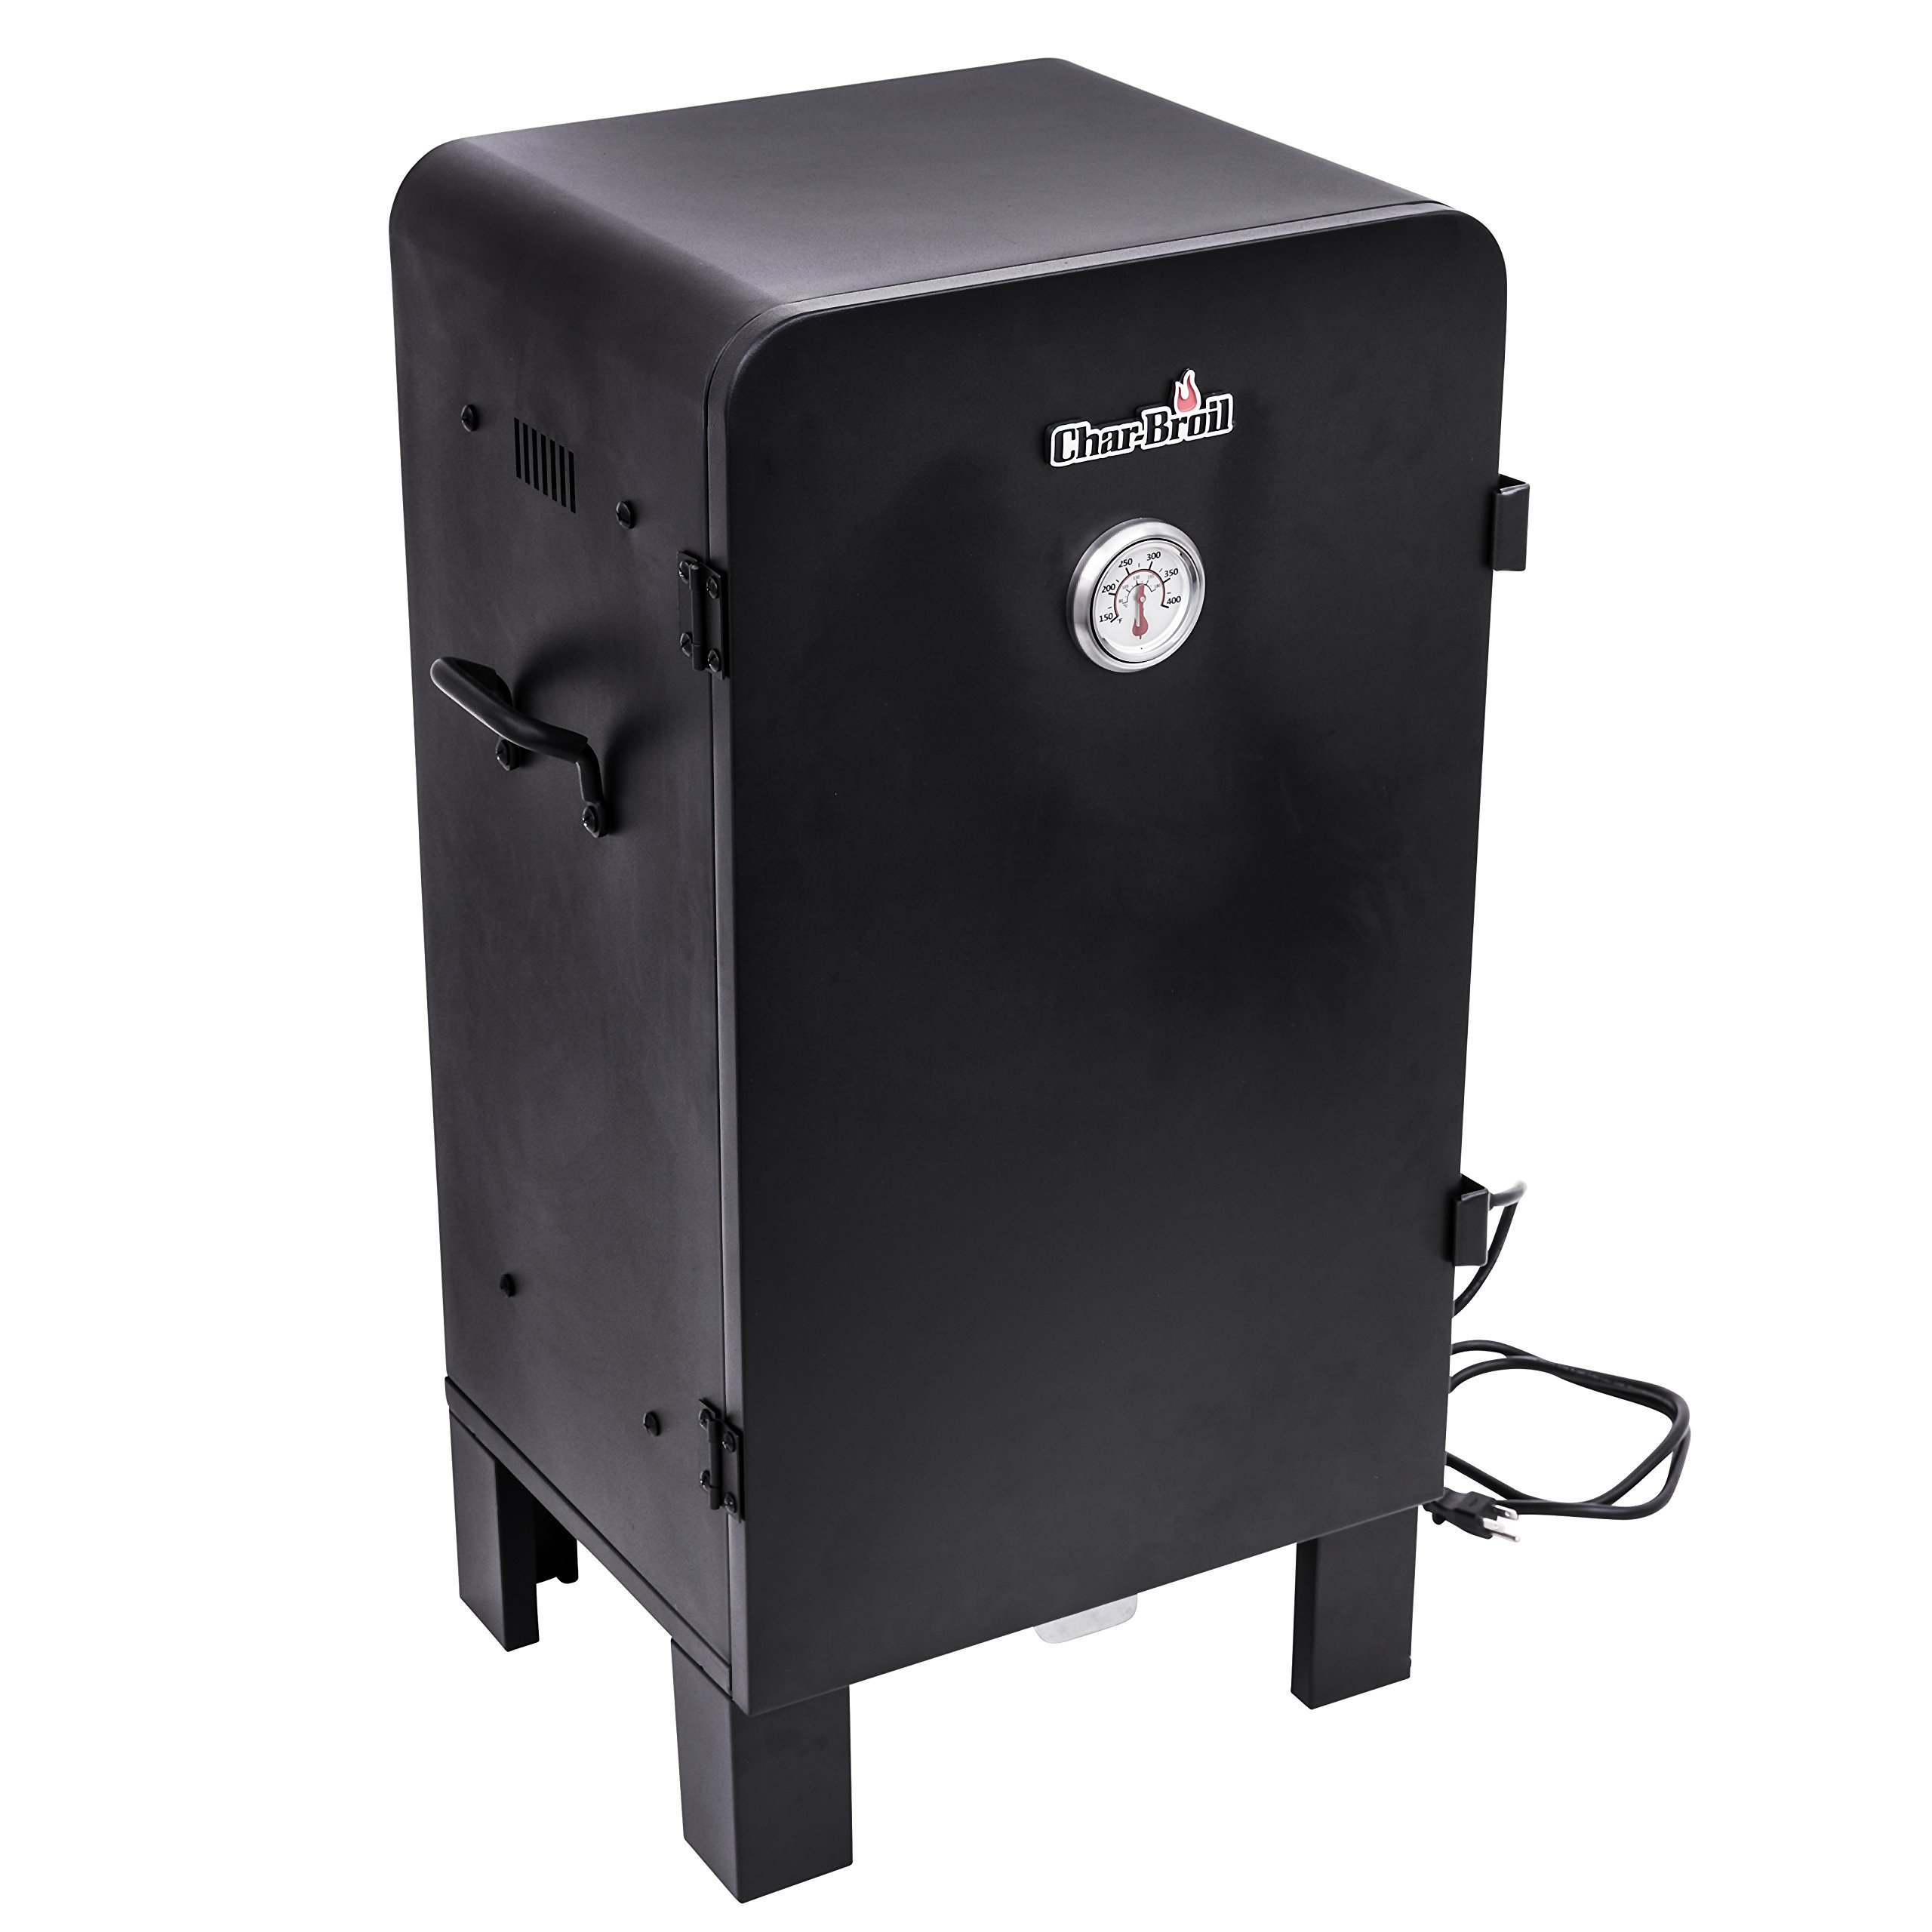 Char-Broil Analog Electric Smoker by Char-Broil